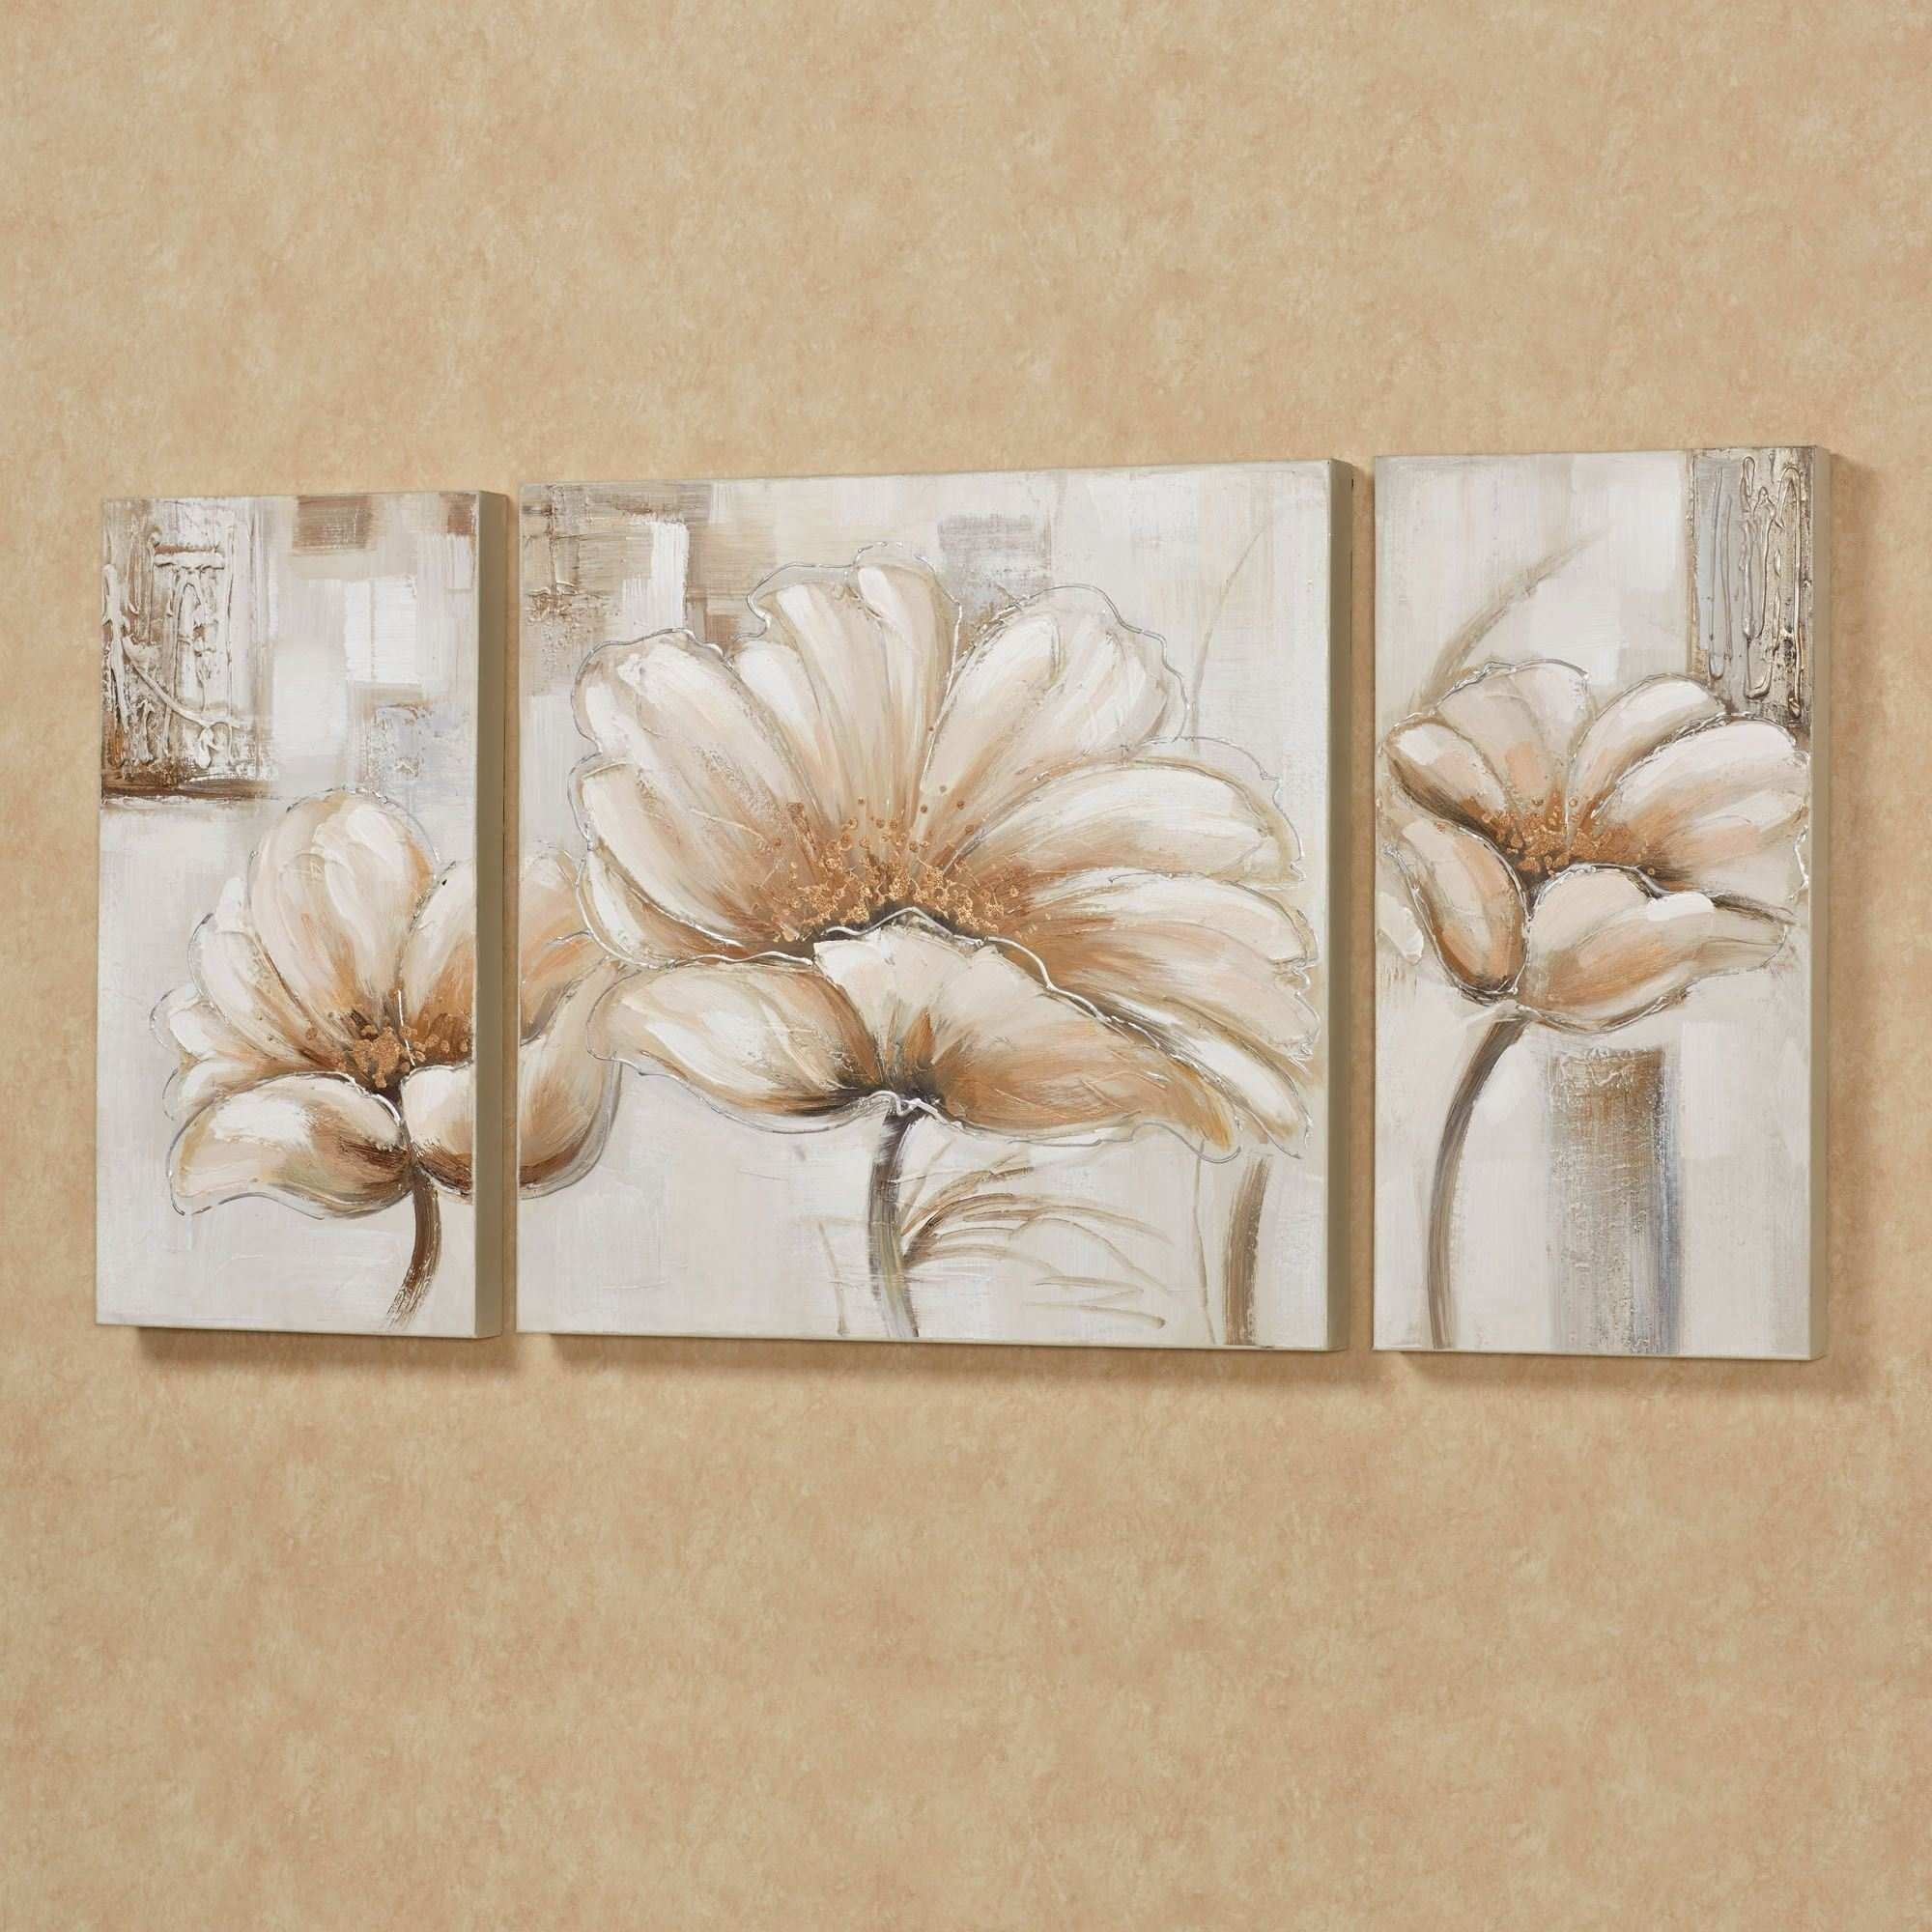 Canvas Wall Art Ideas Awesome Blooming Splendor Floral Triptych Within Latest Floral Canvas Wall Art (View 5 of 20)